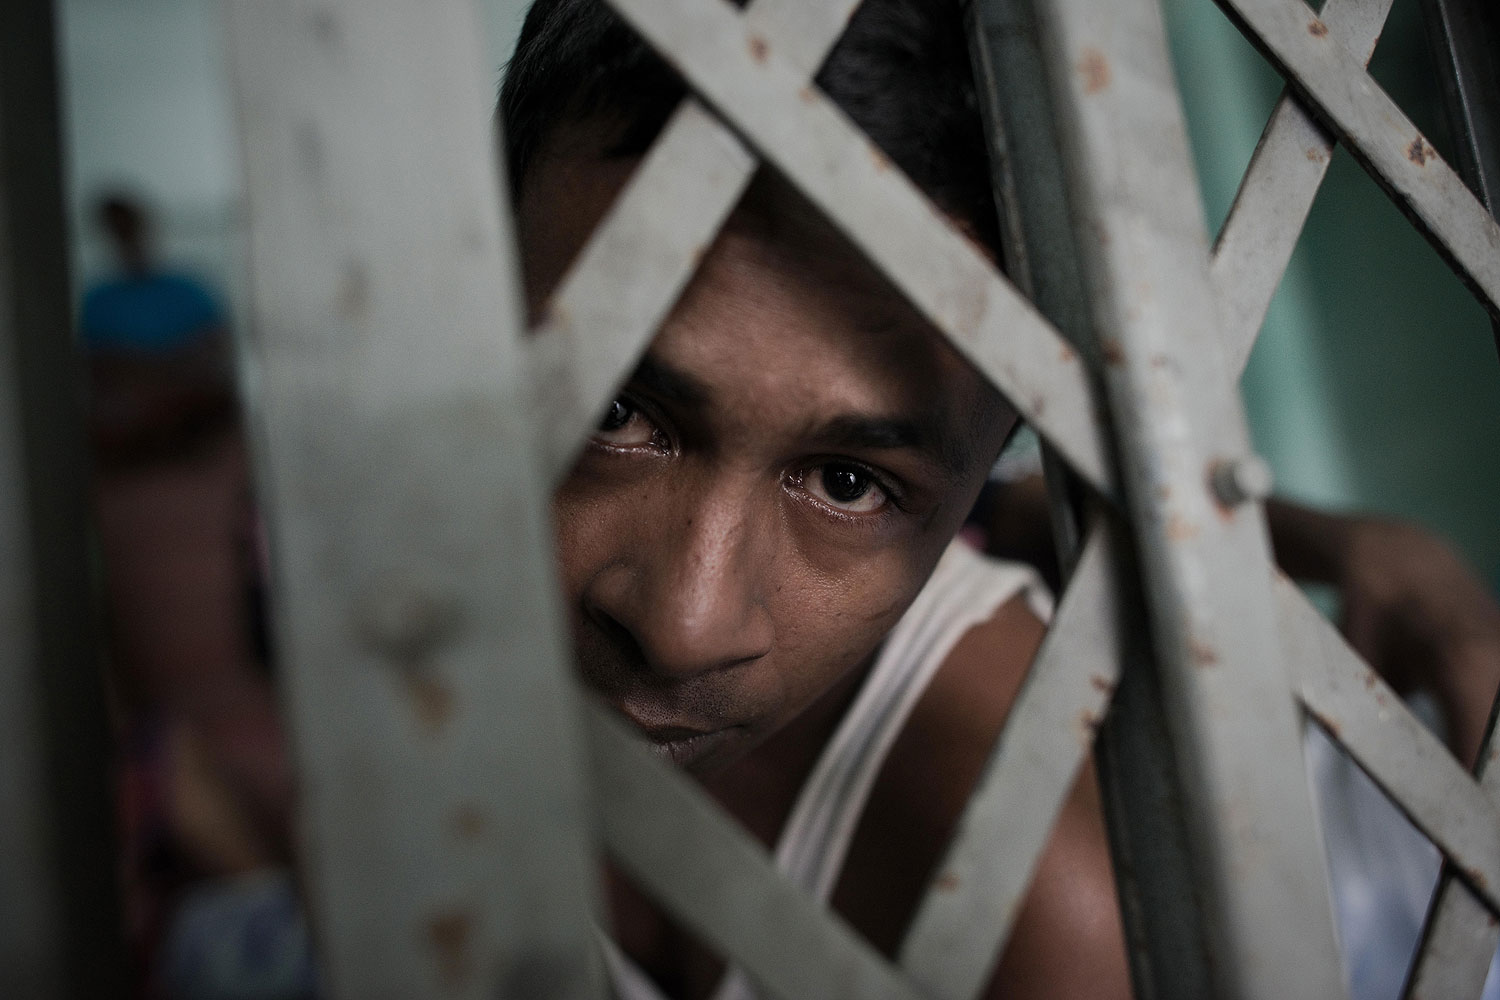 A Muslim Rohingha asylum seeker stands inside a cell at the Thai immigration detention centre in Phangnga, southern Thailand